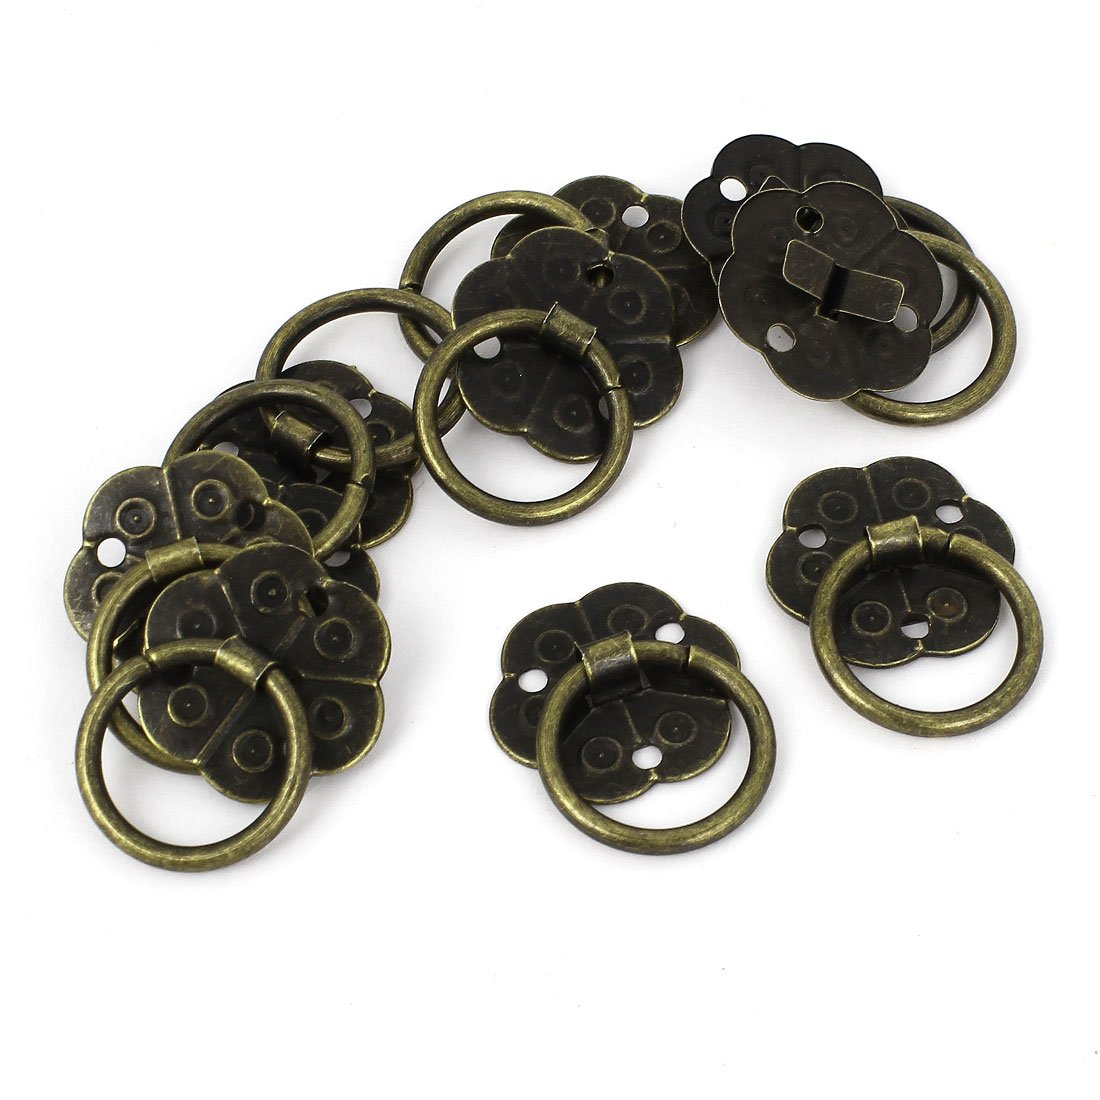 10pcs Home Jewelry Box Cabinet Door Pull Handle Ring Bronze Tone 0